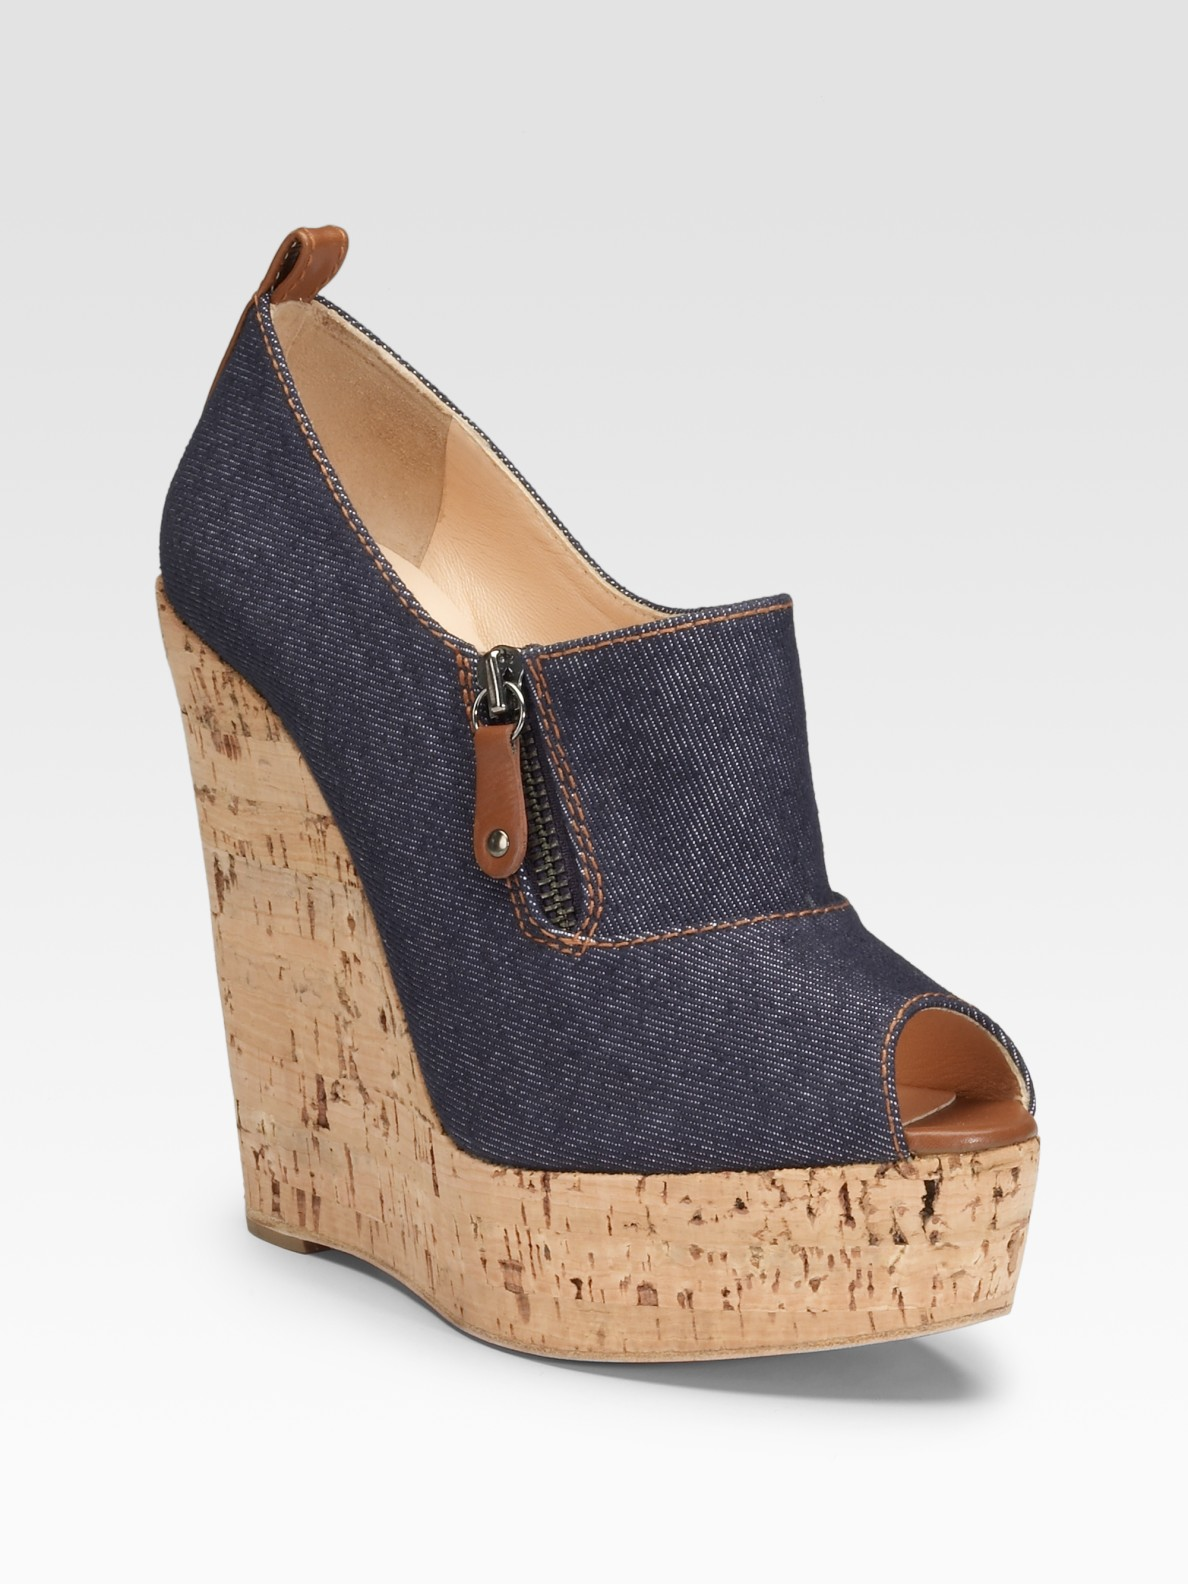 christian louboutin shoes for men price - Christian louboutin Deroba 140 Denim Peep-toe Wedges in Blue ...